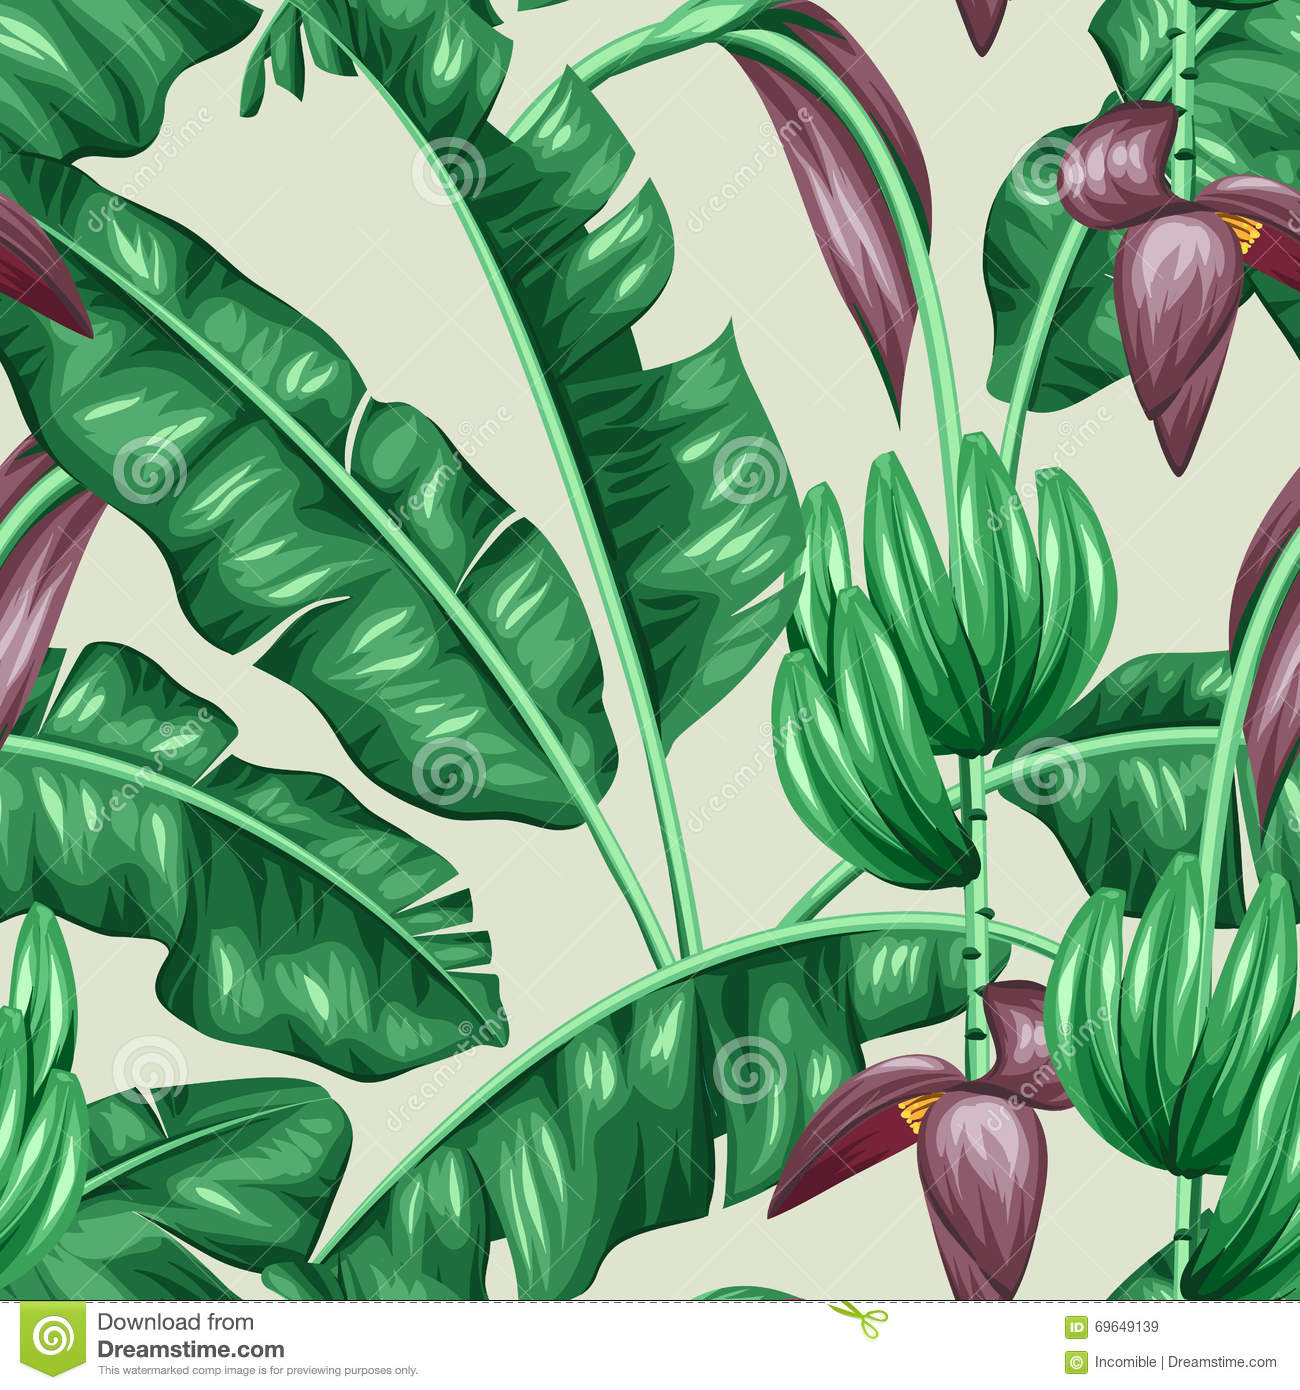 seamless pattern with banana leaves  decorative image of